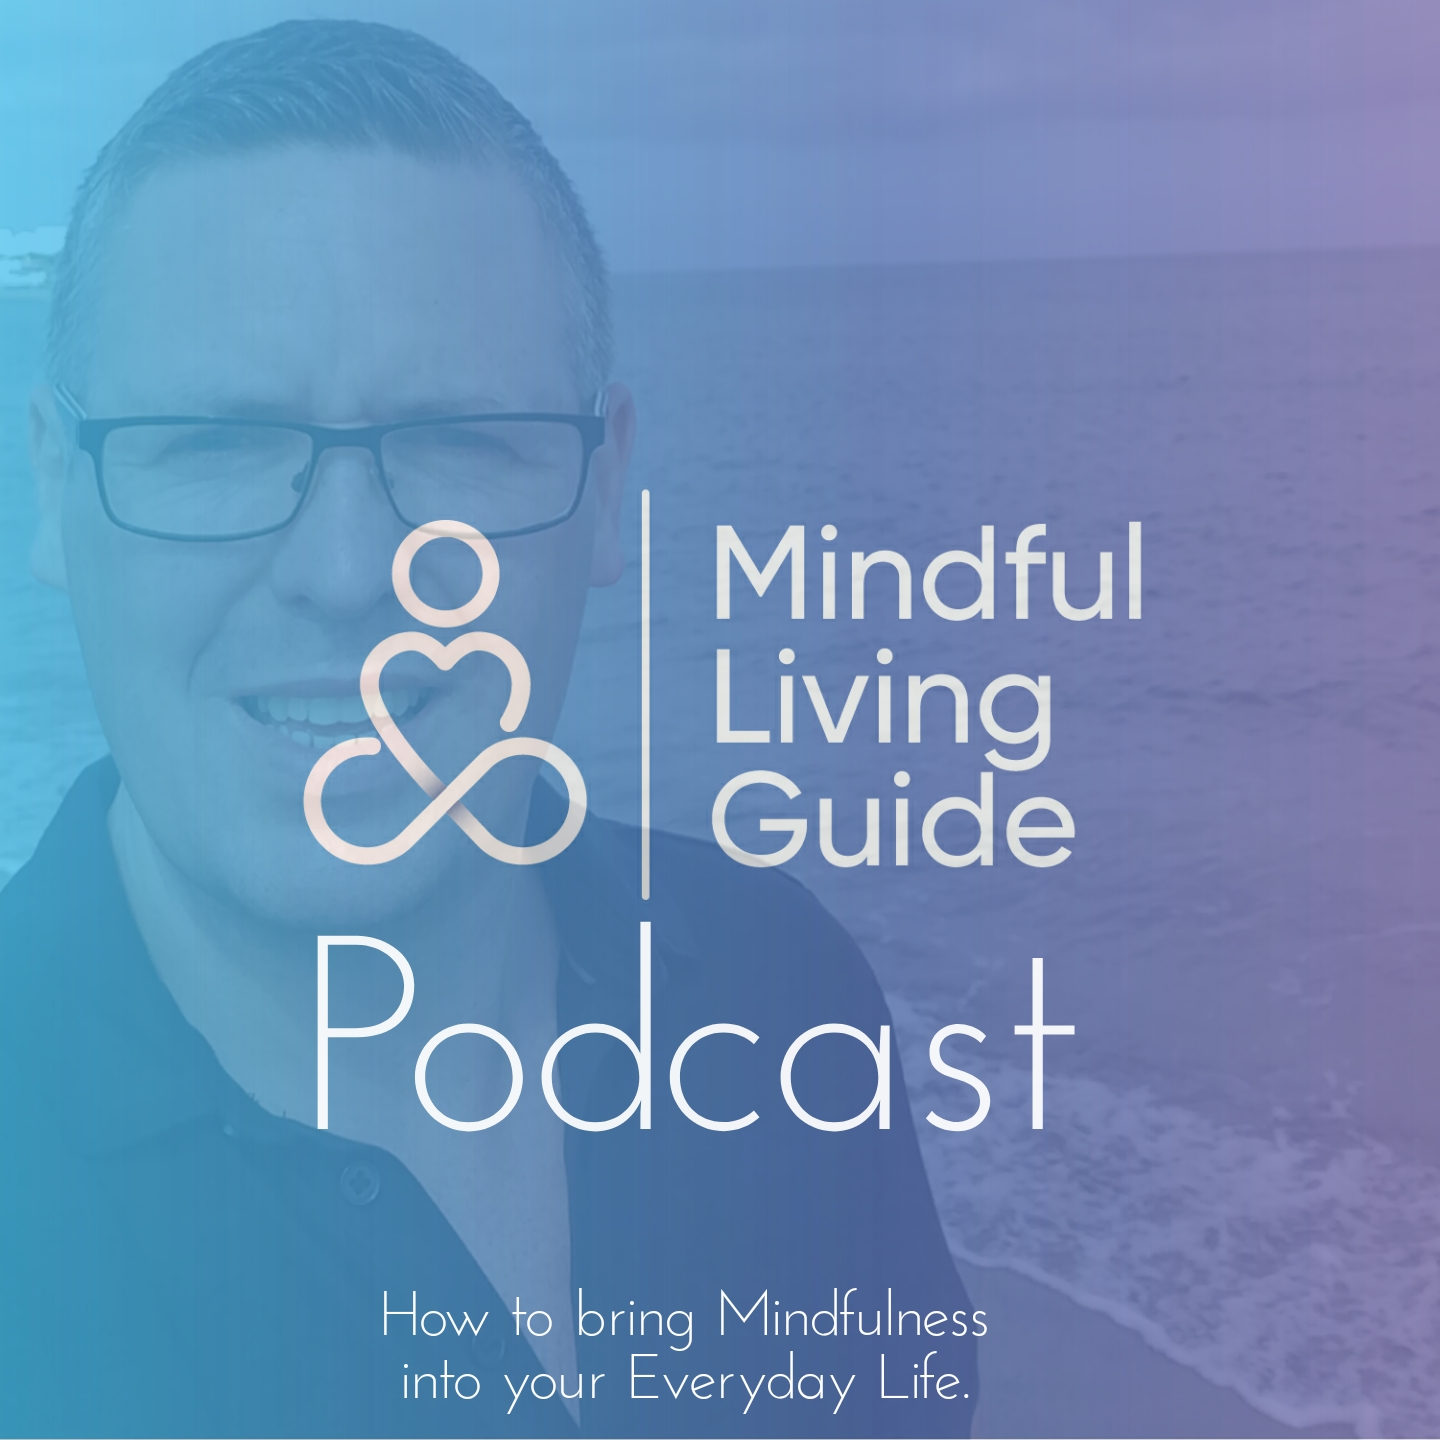 1- My first Introduction to Mindfulness show art